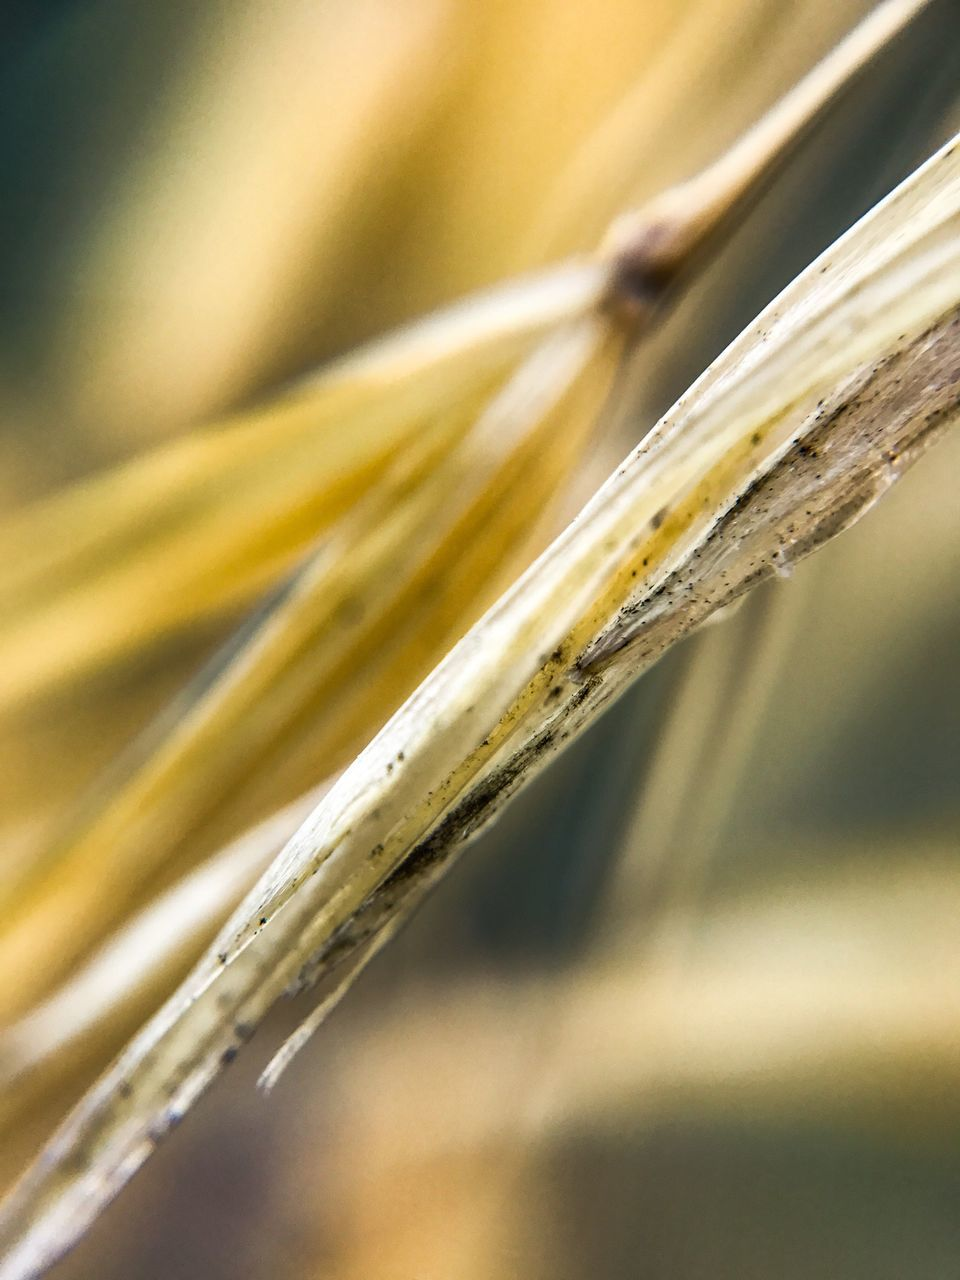 cereal plant, close-up, wheat, nature, growth, no people, ear of wheat, yellow, day, outdoors, beauty in nature, fragility